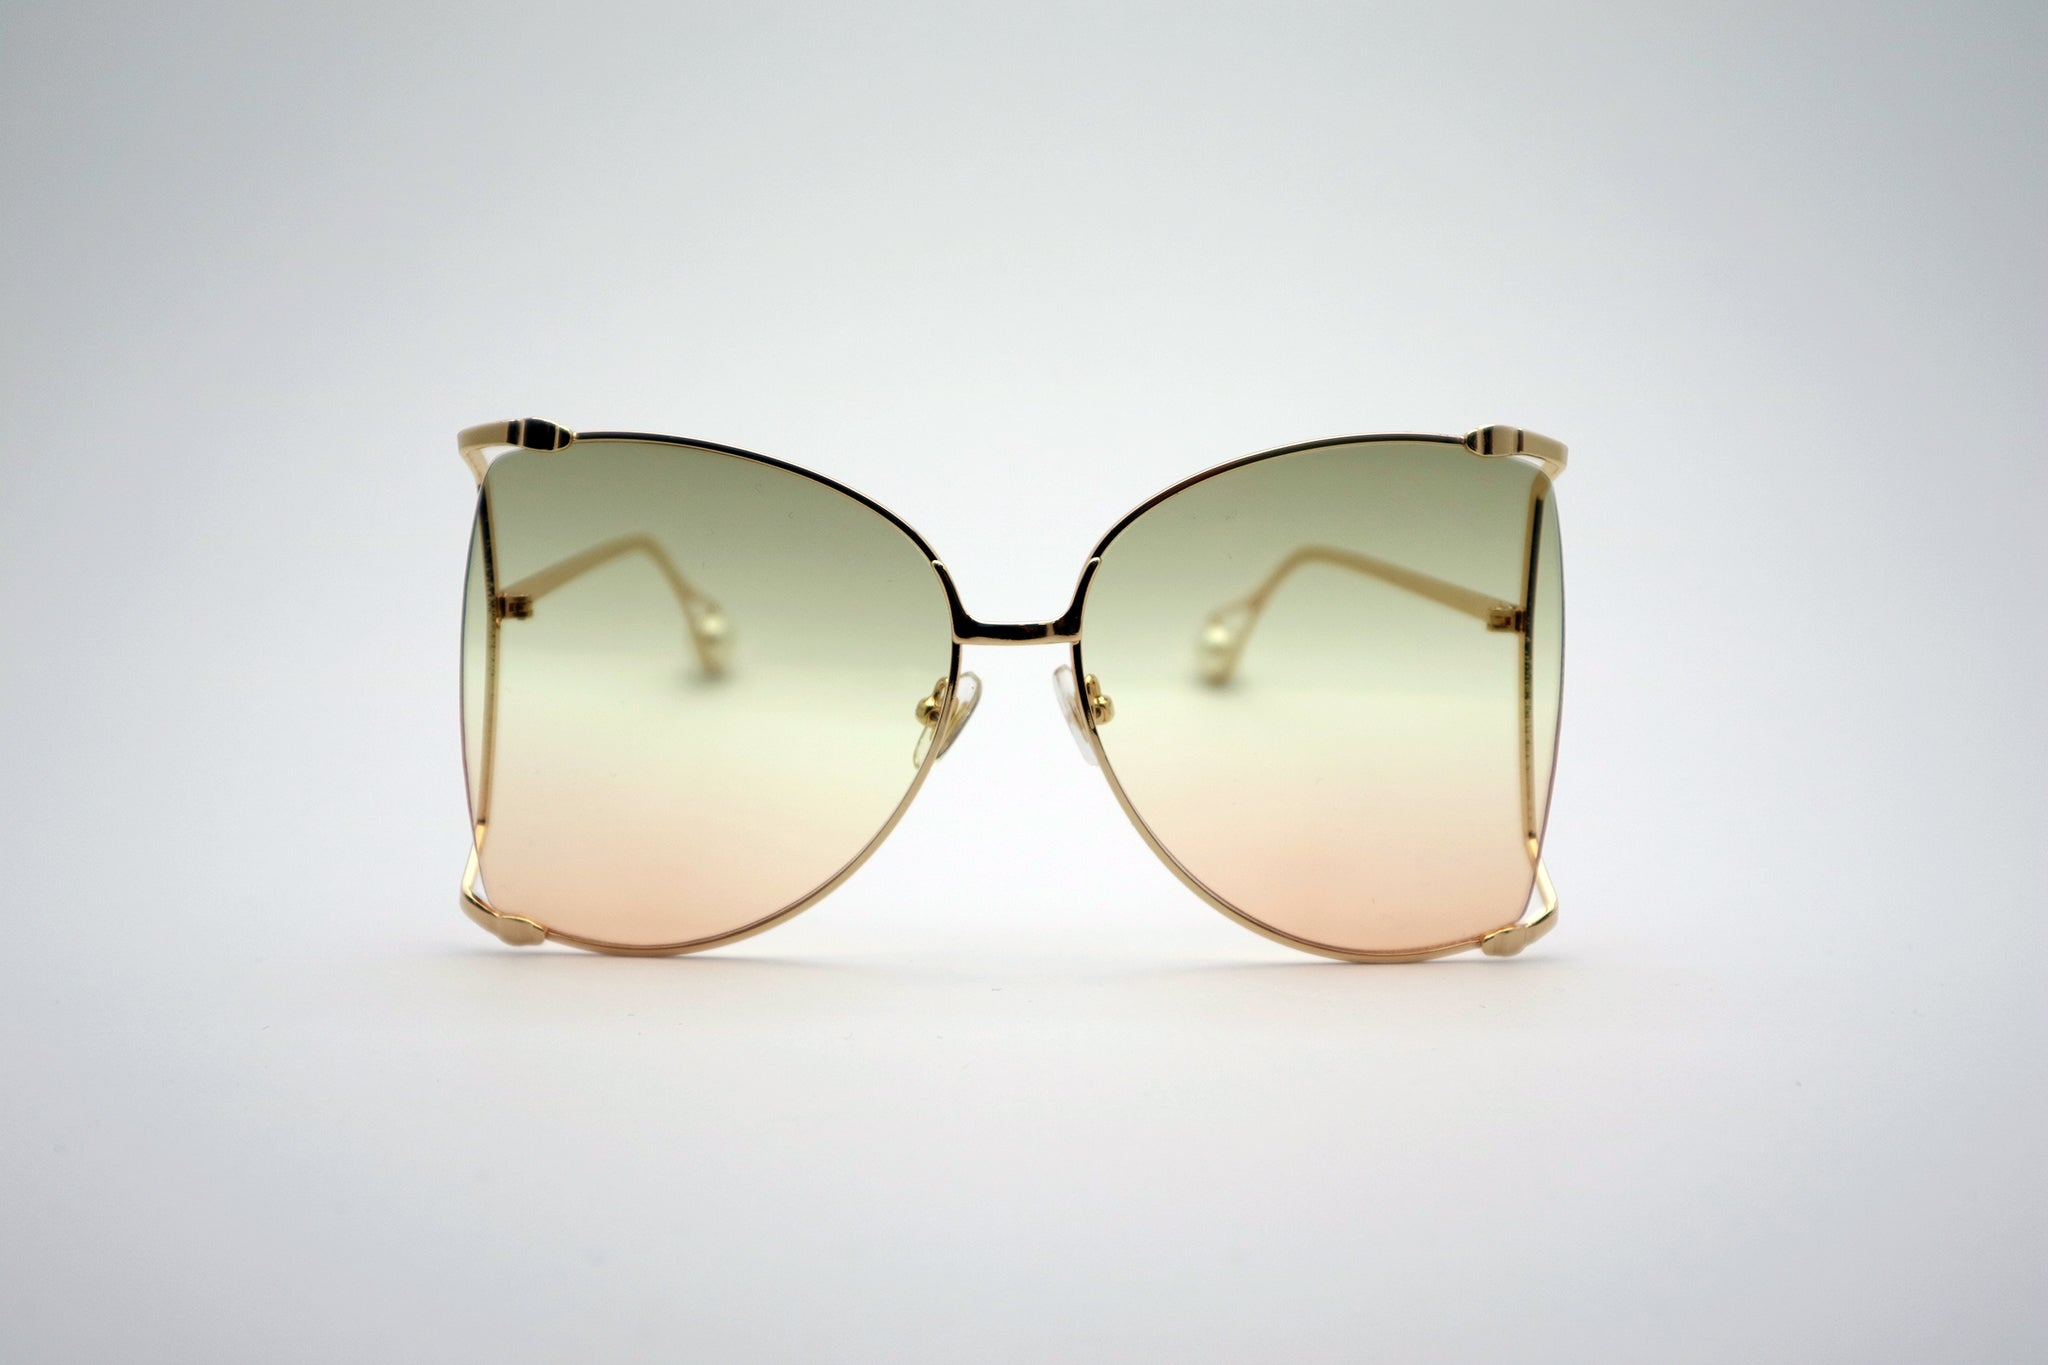 823ddf677f Queens Love - Woodstock Wonderland Sunglasses - Gold Smokey Pink ...